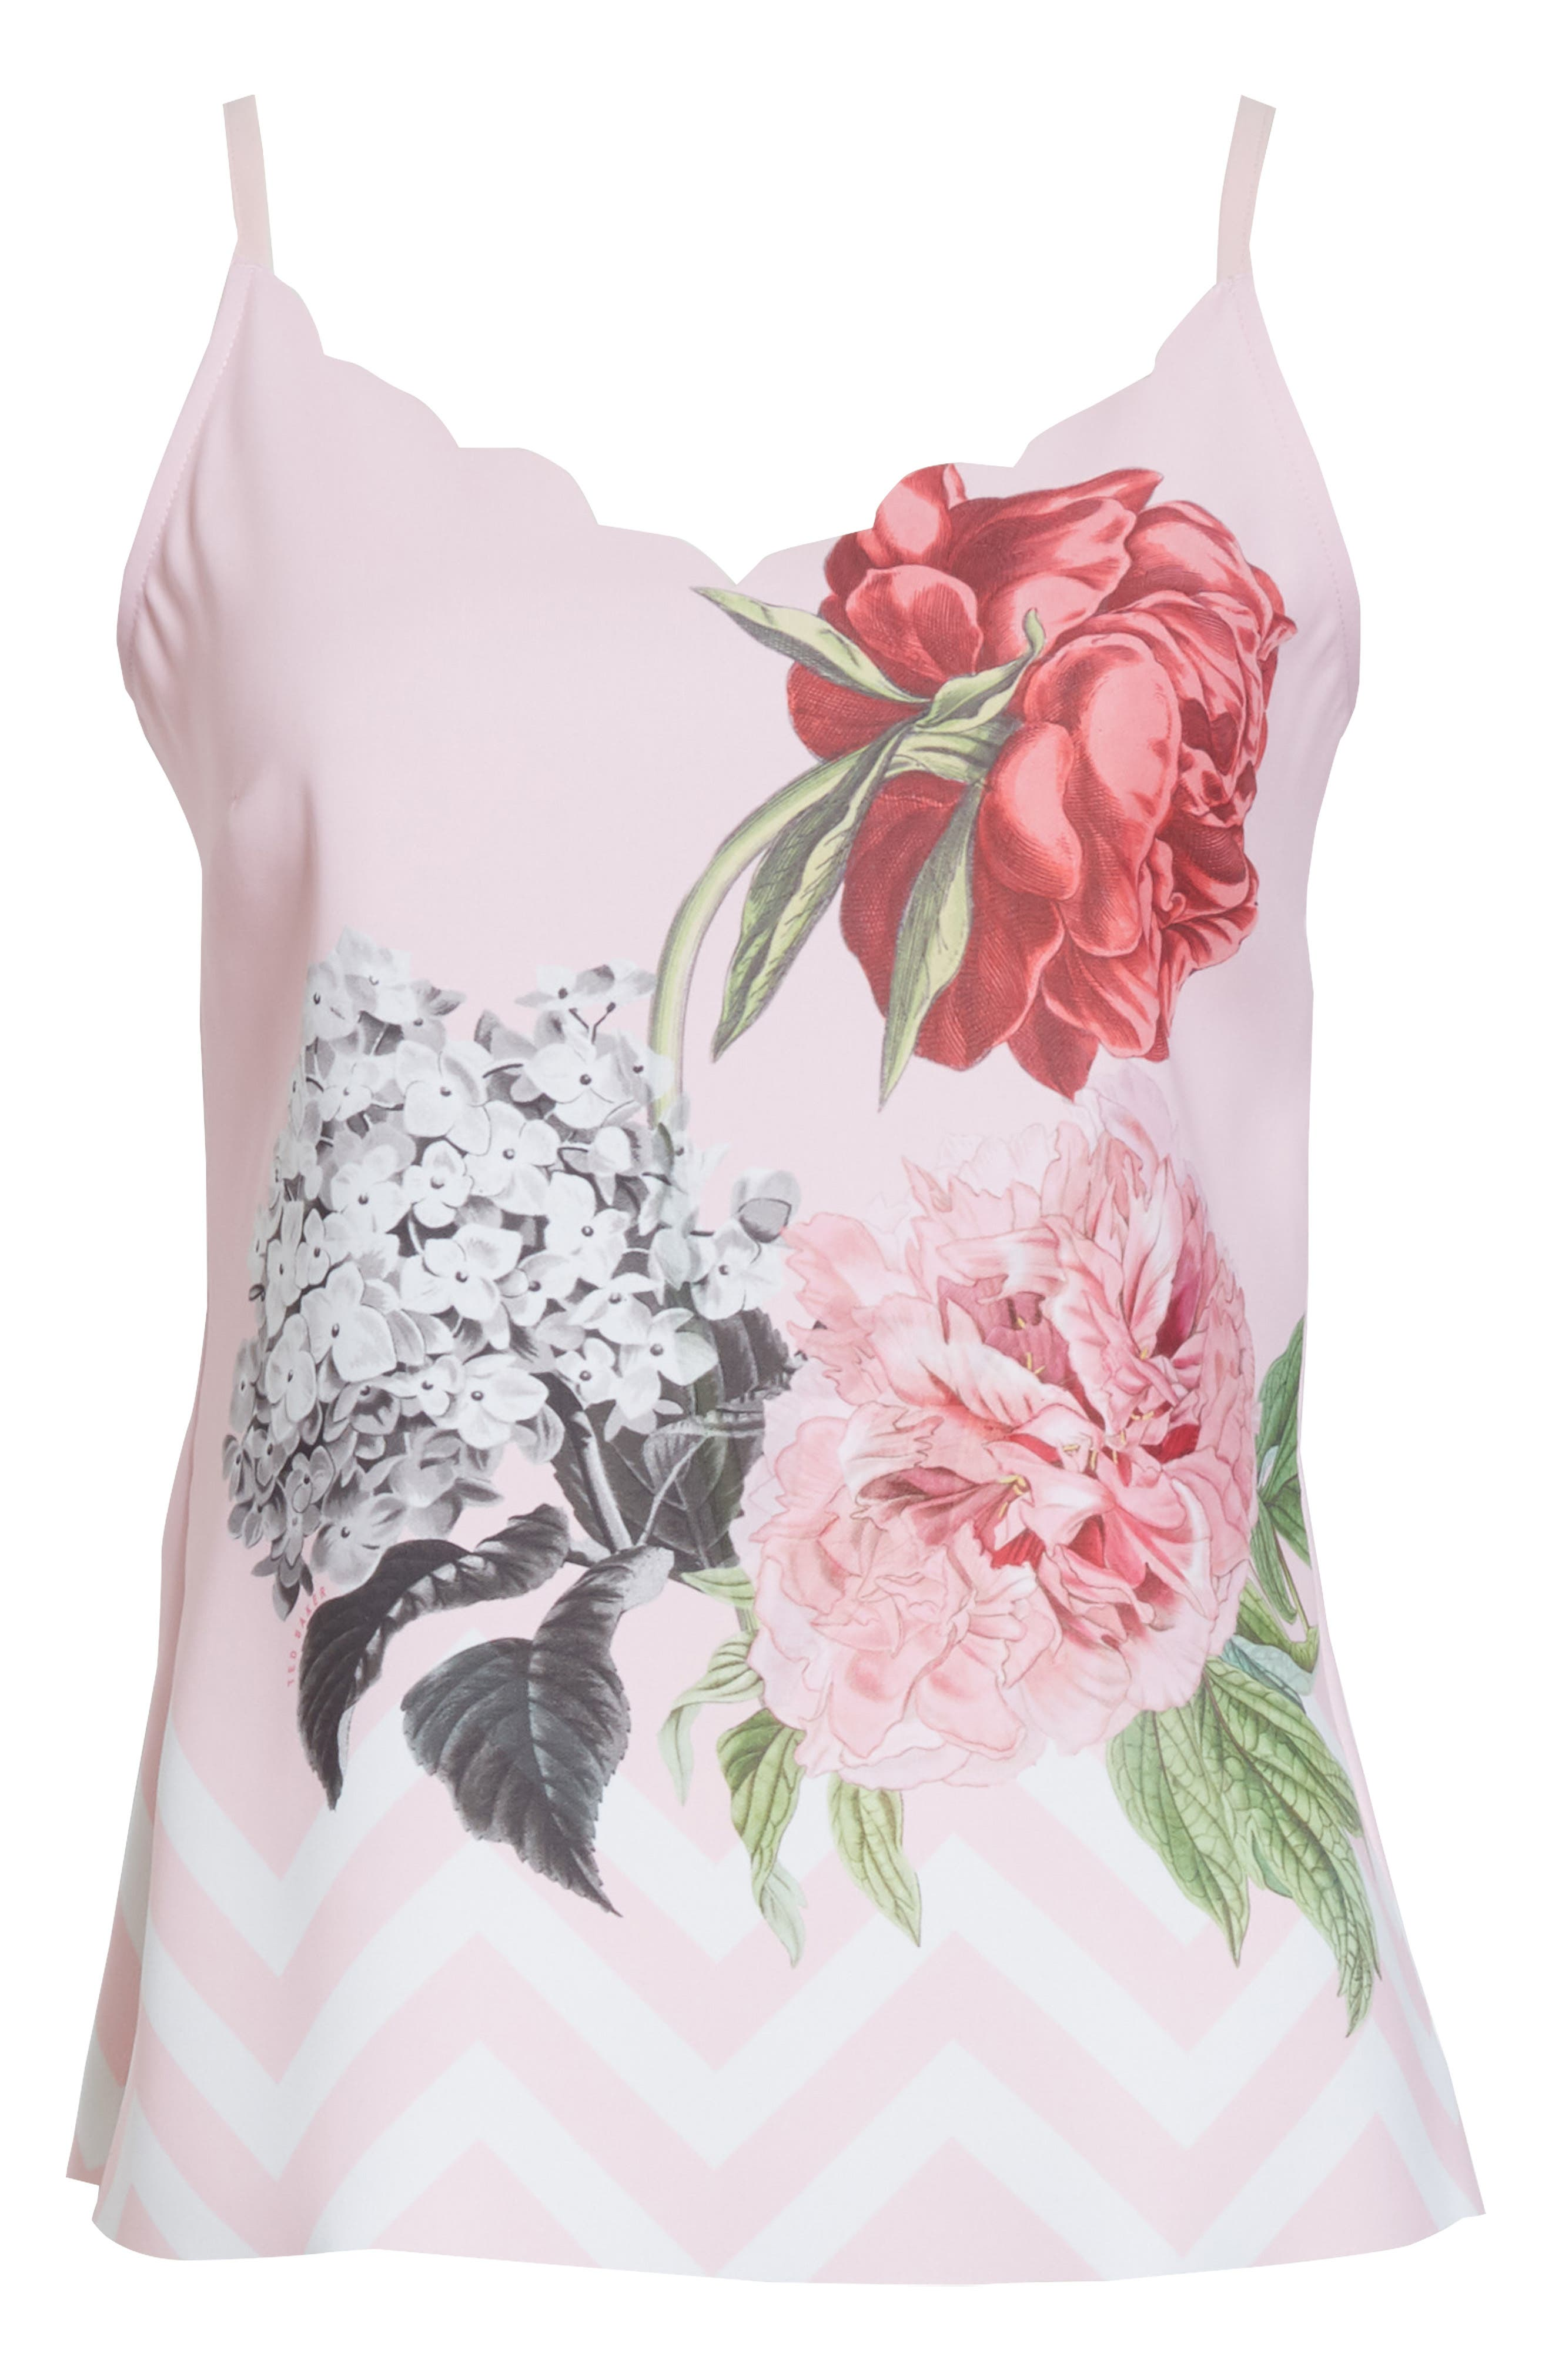 Palace Gardens Scalloped Camisole,                             Alternate thumbnail 6, color,                             Pale Pink